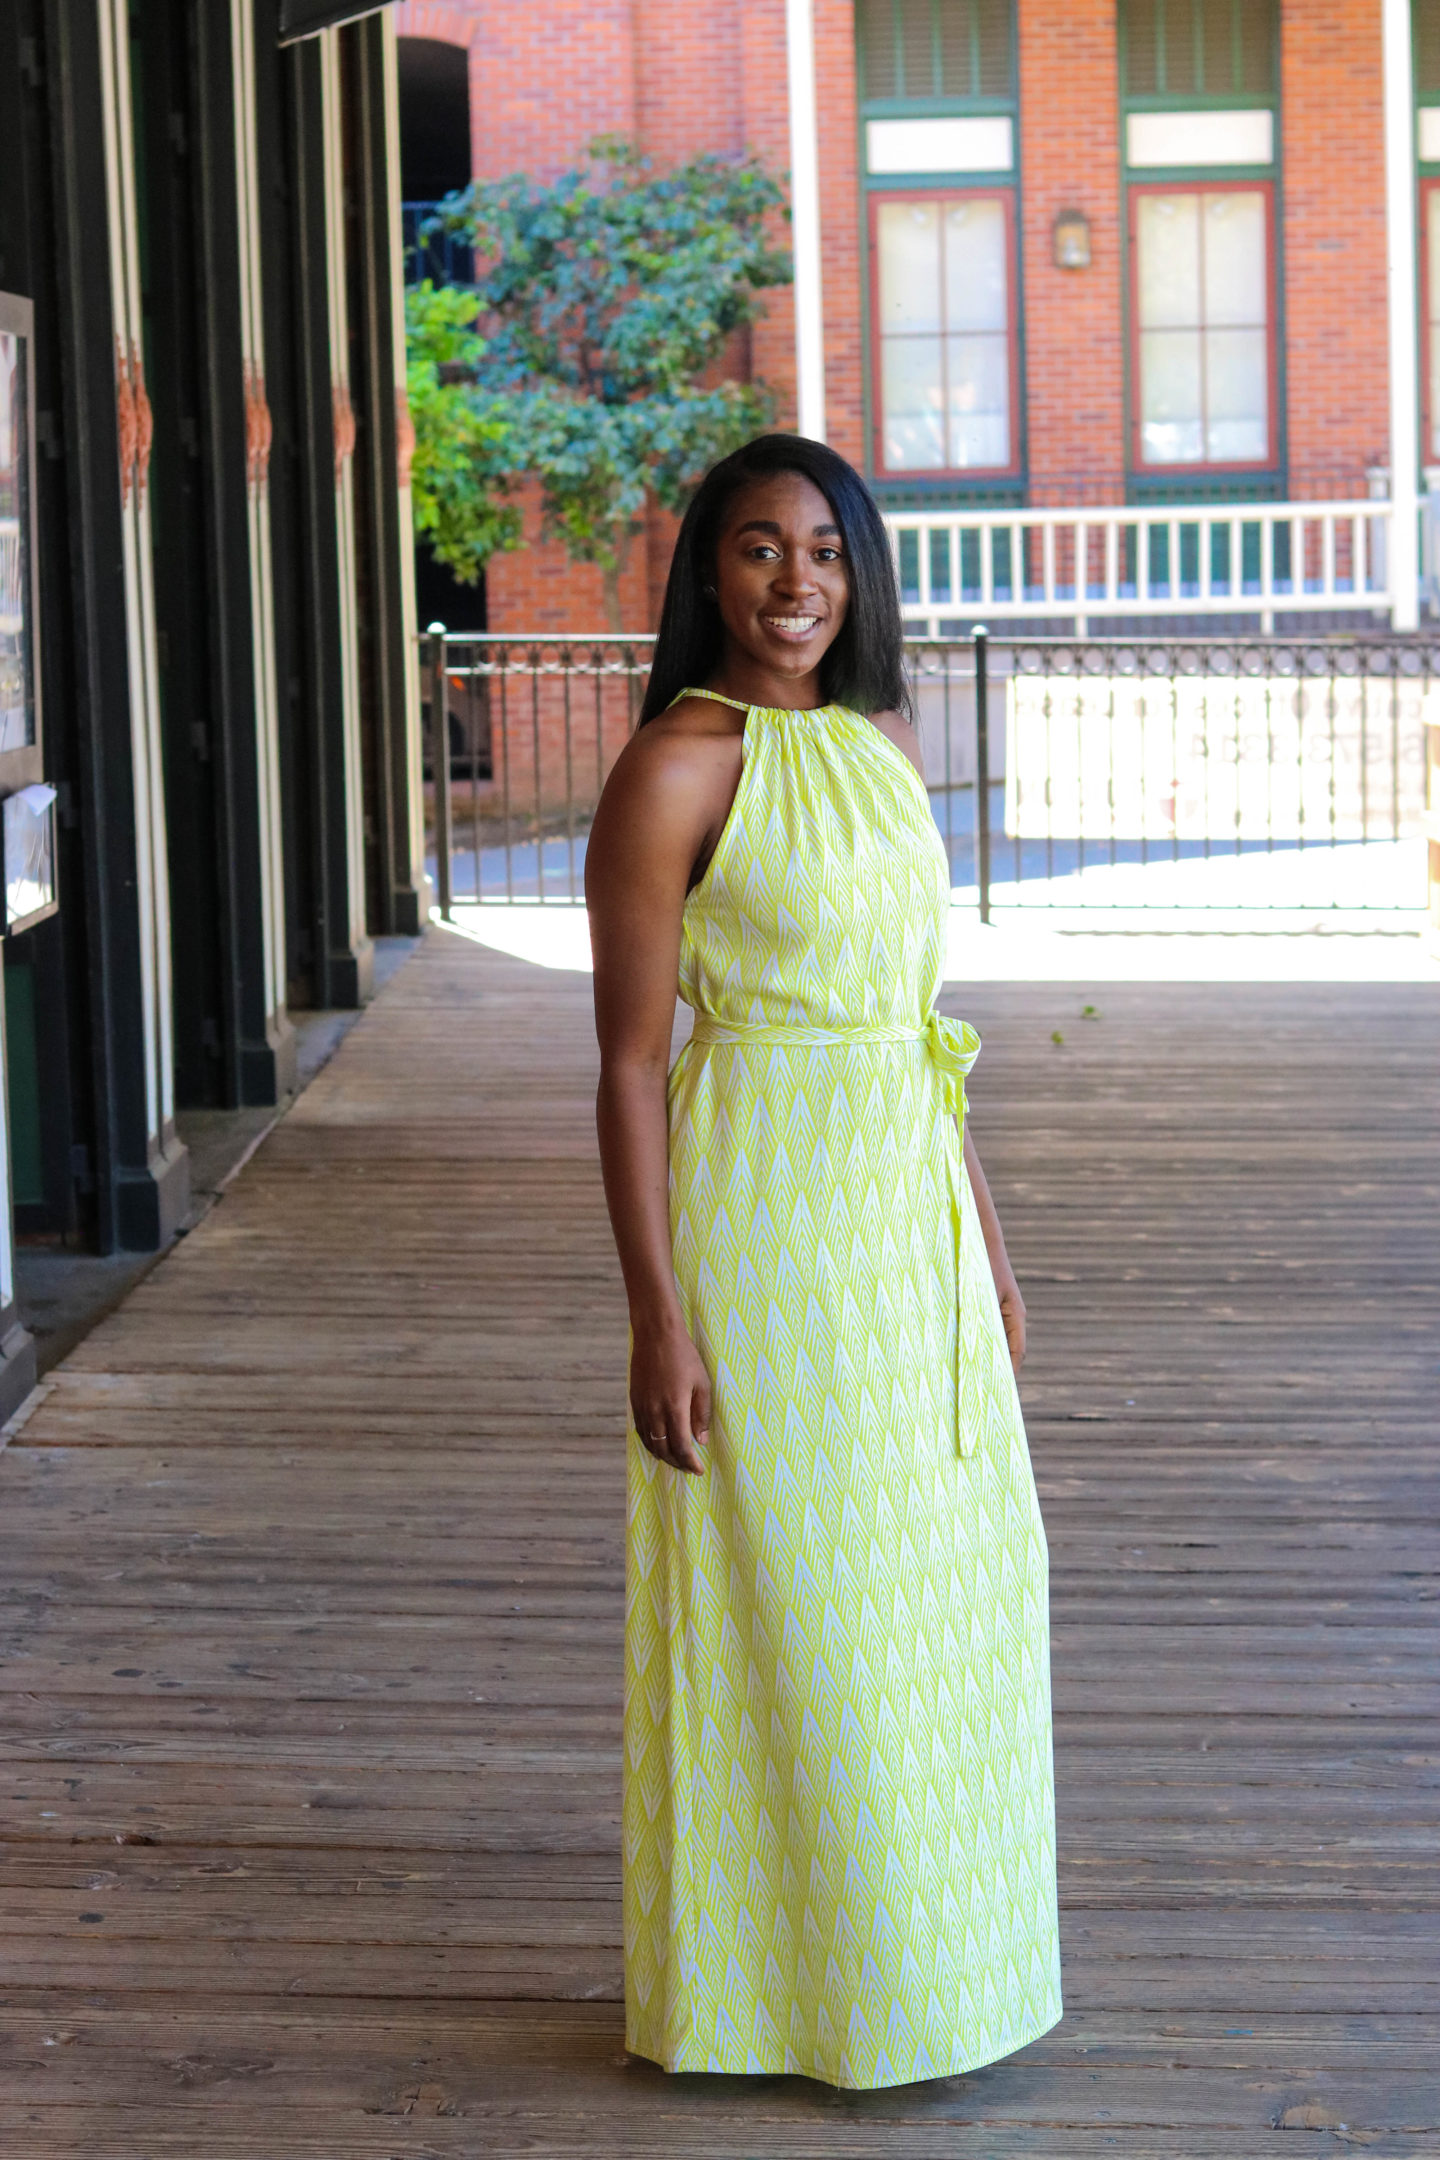 a20af550c8 Diy Halter Maxi Dress Mccall S 7405 Review Montoya Mayo. The Halter Maxi  Dress Tutorial Such A Super Cute Smashed Peas